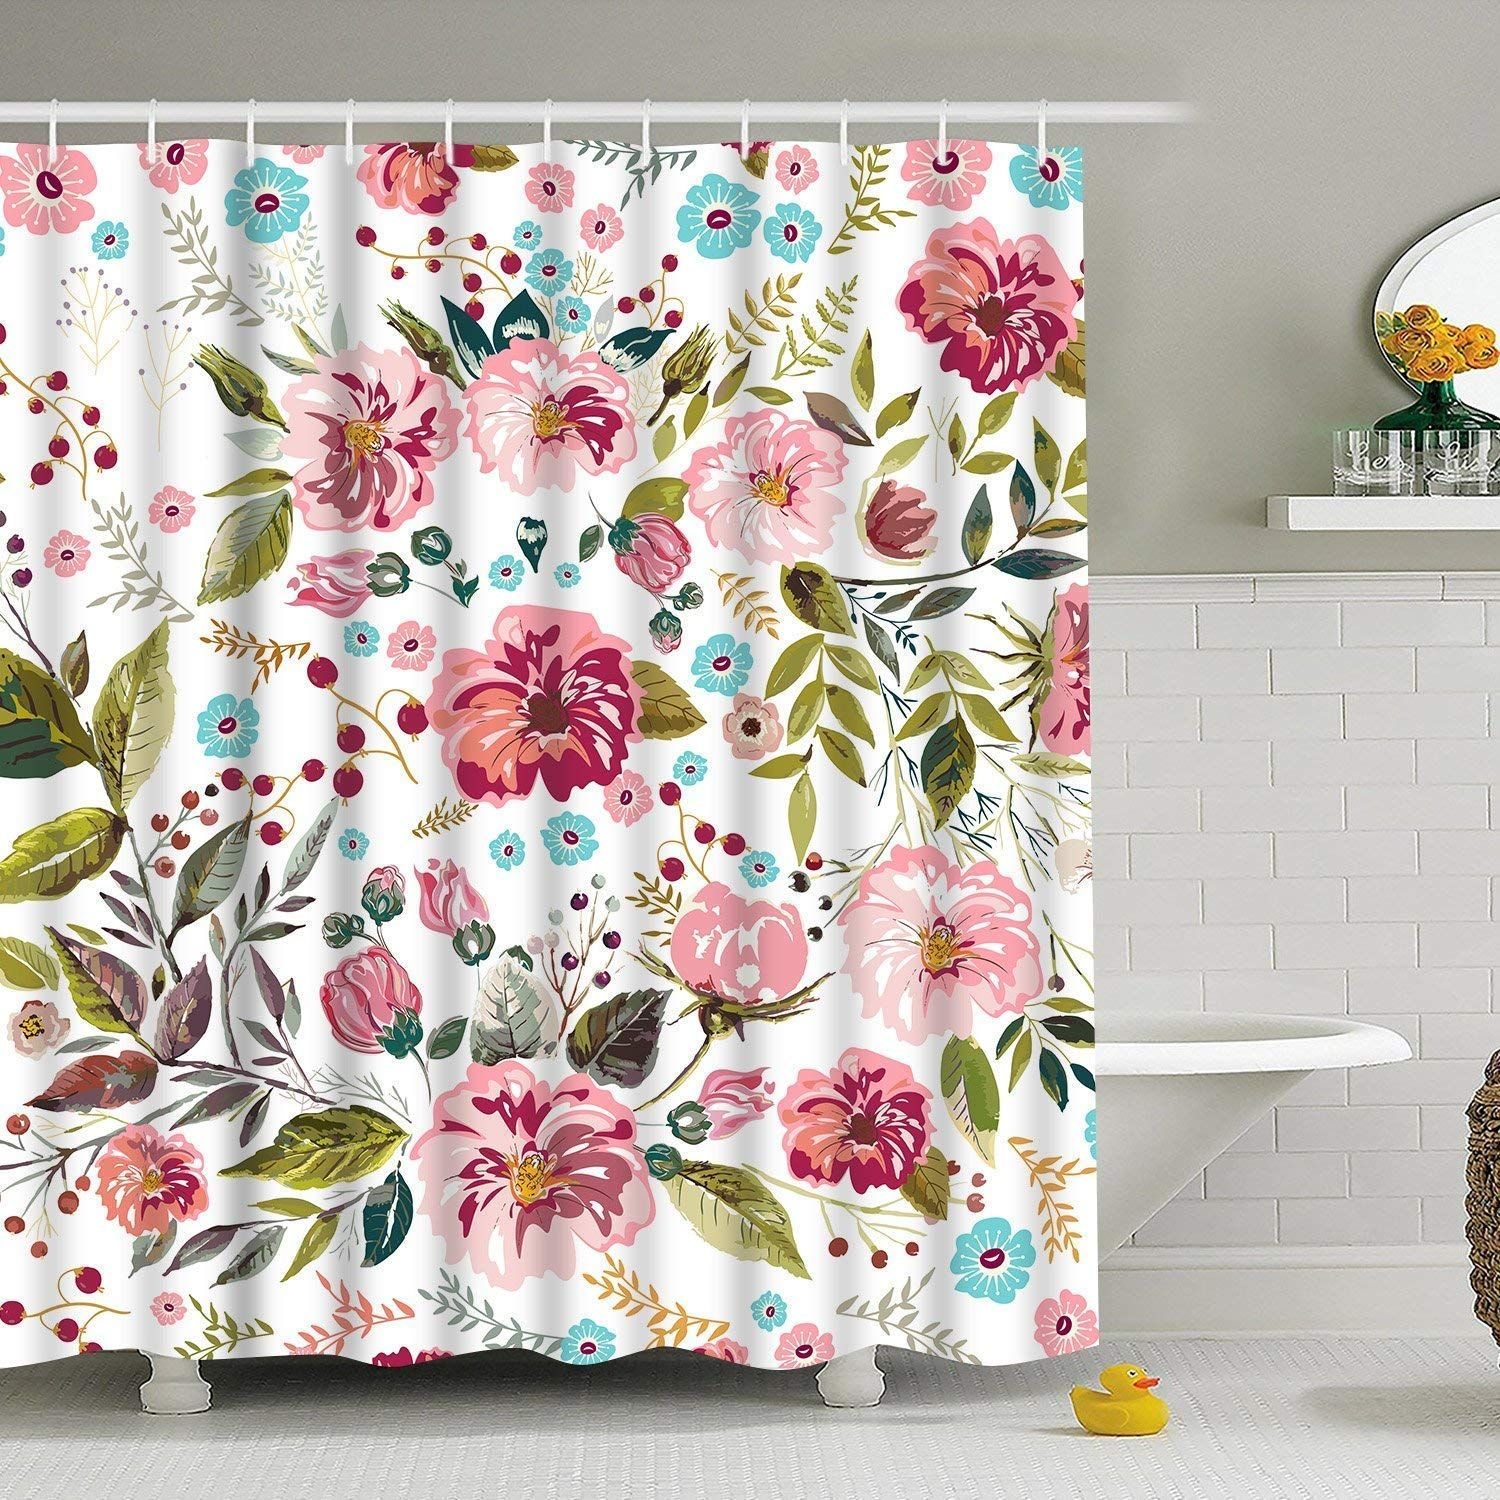 Modern Timesm Bathroom Shower Curtain Colorful Flower Shower